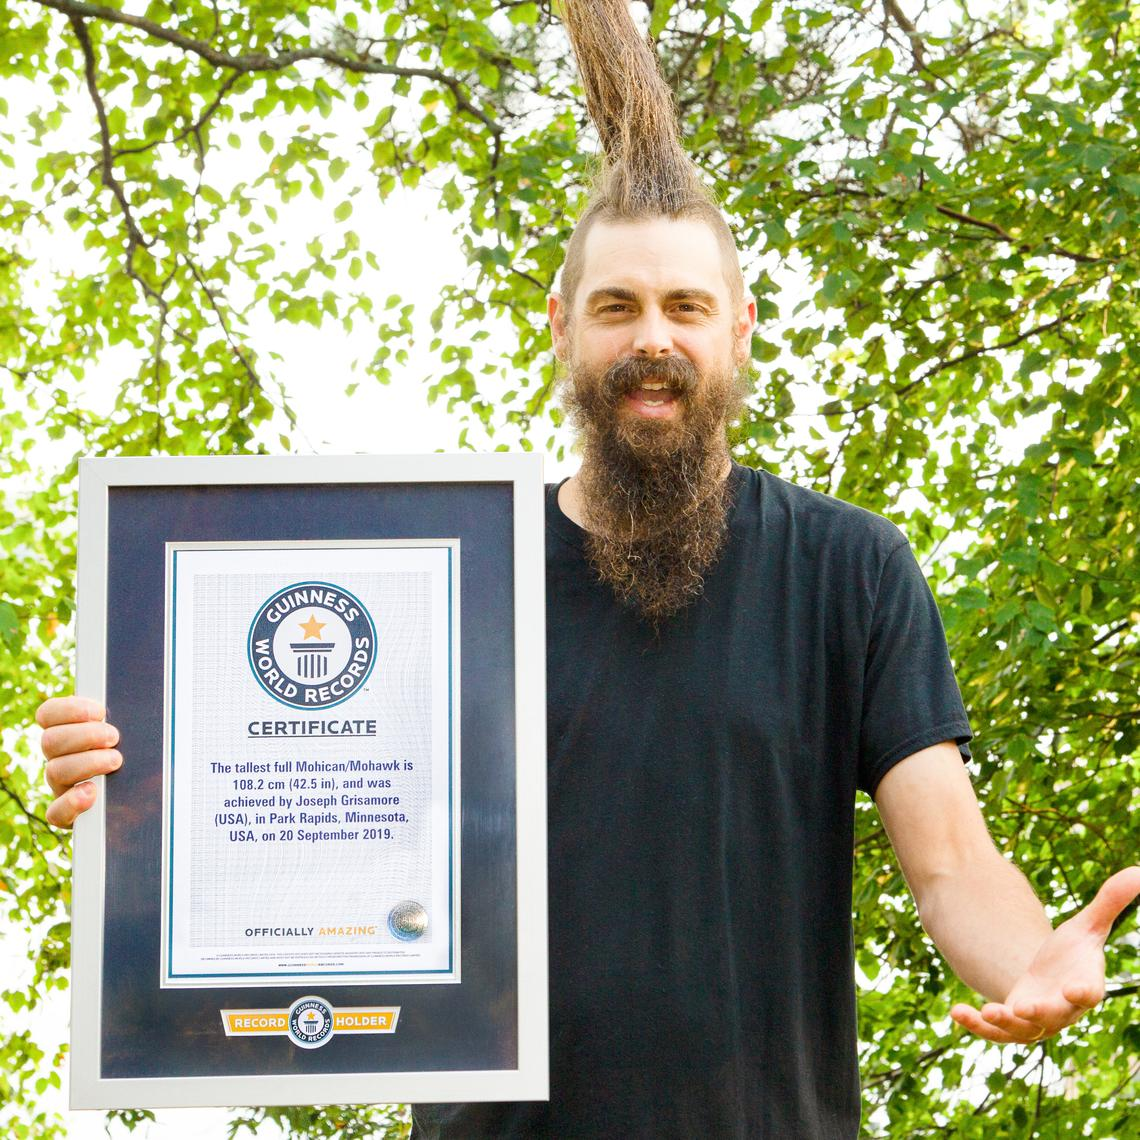 Grisamore poses with his official Guinness World Record certificate for the tallest full Mohican mohawk, which he accomplished in September 2019.